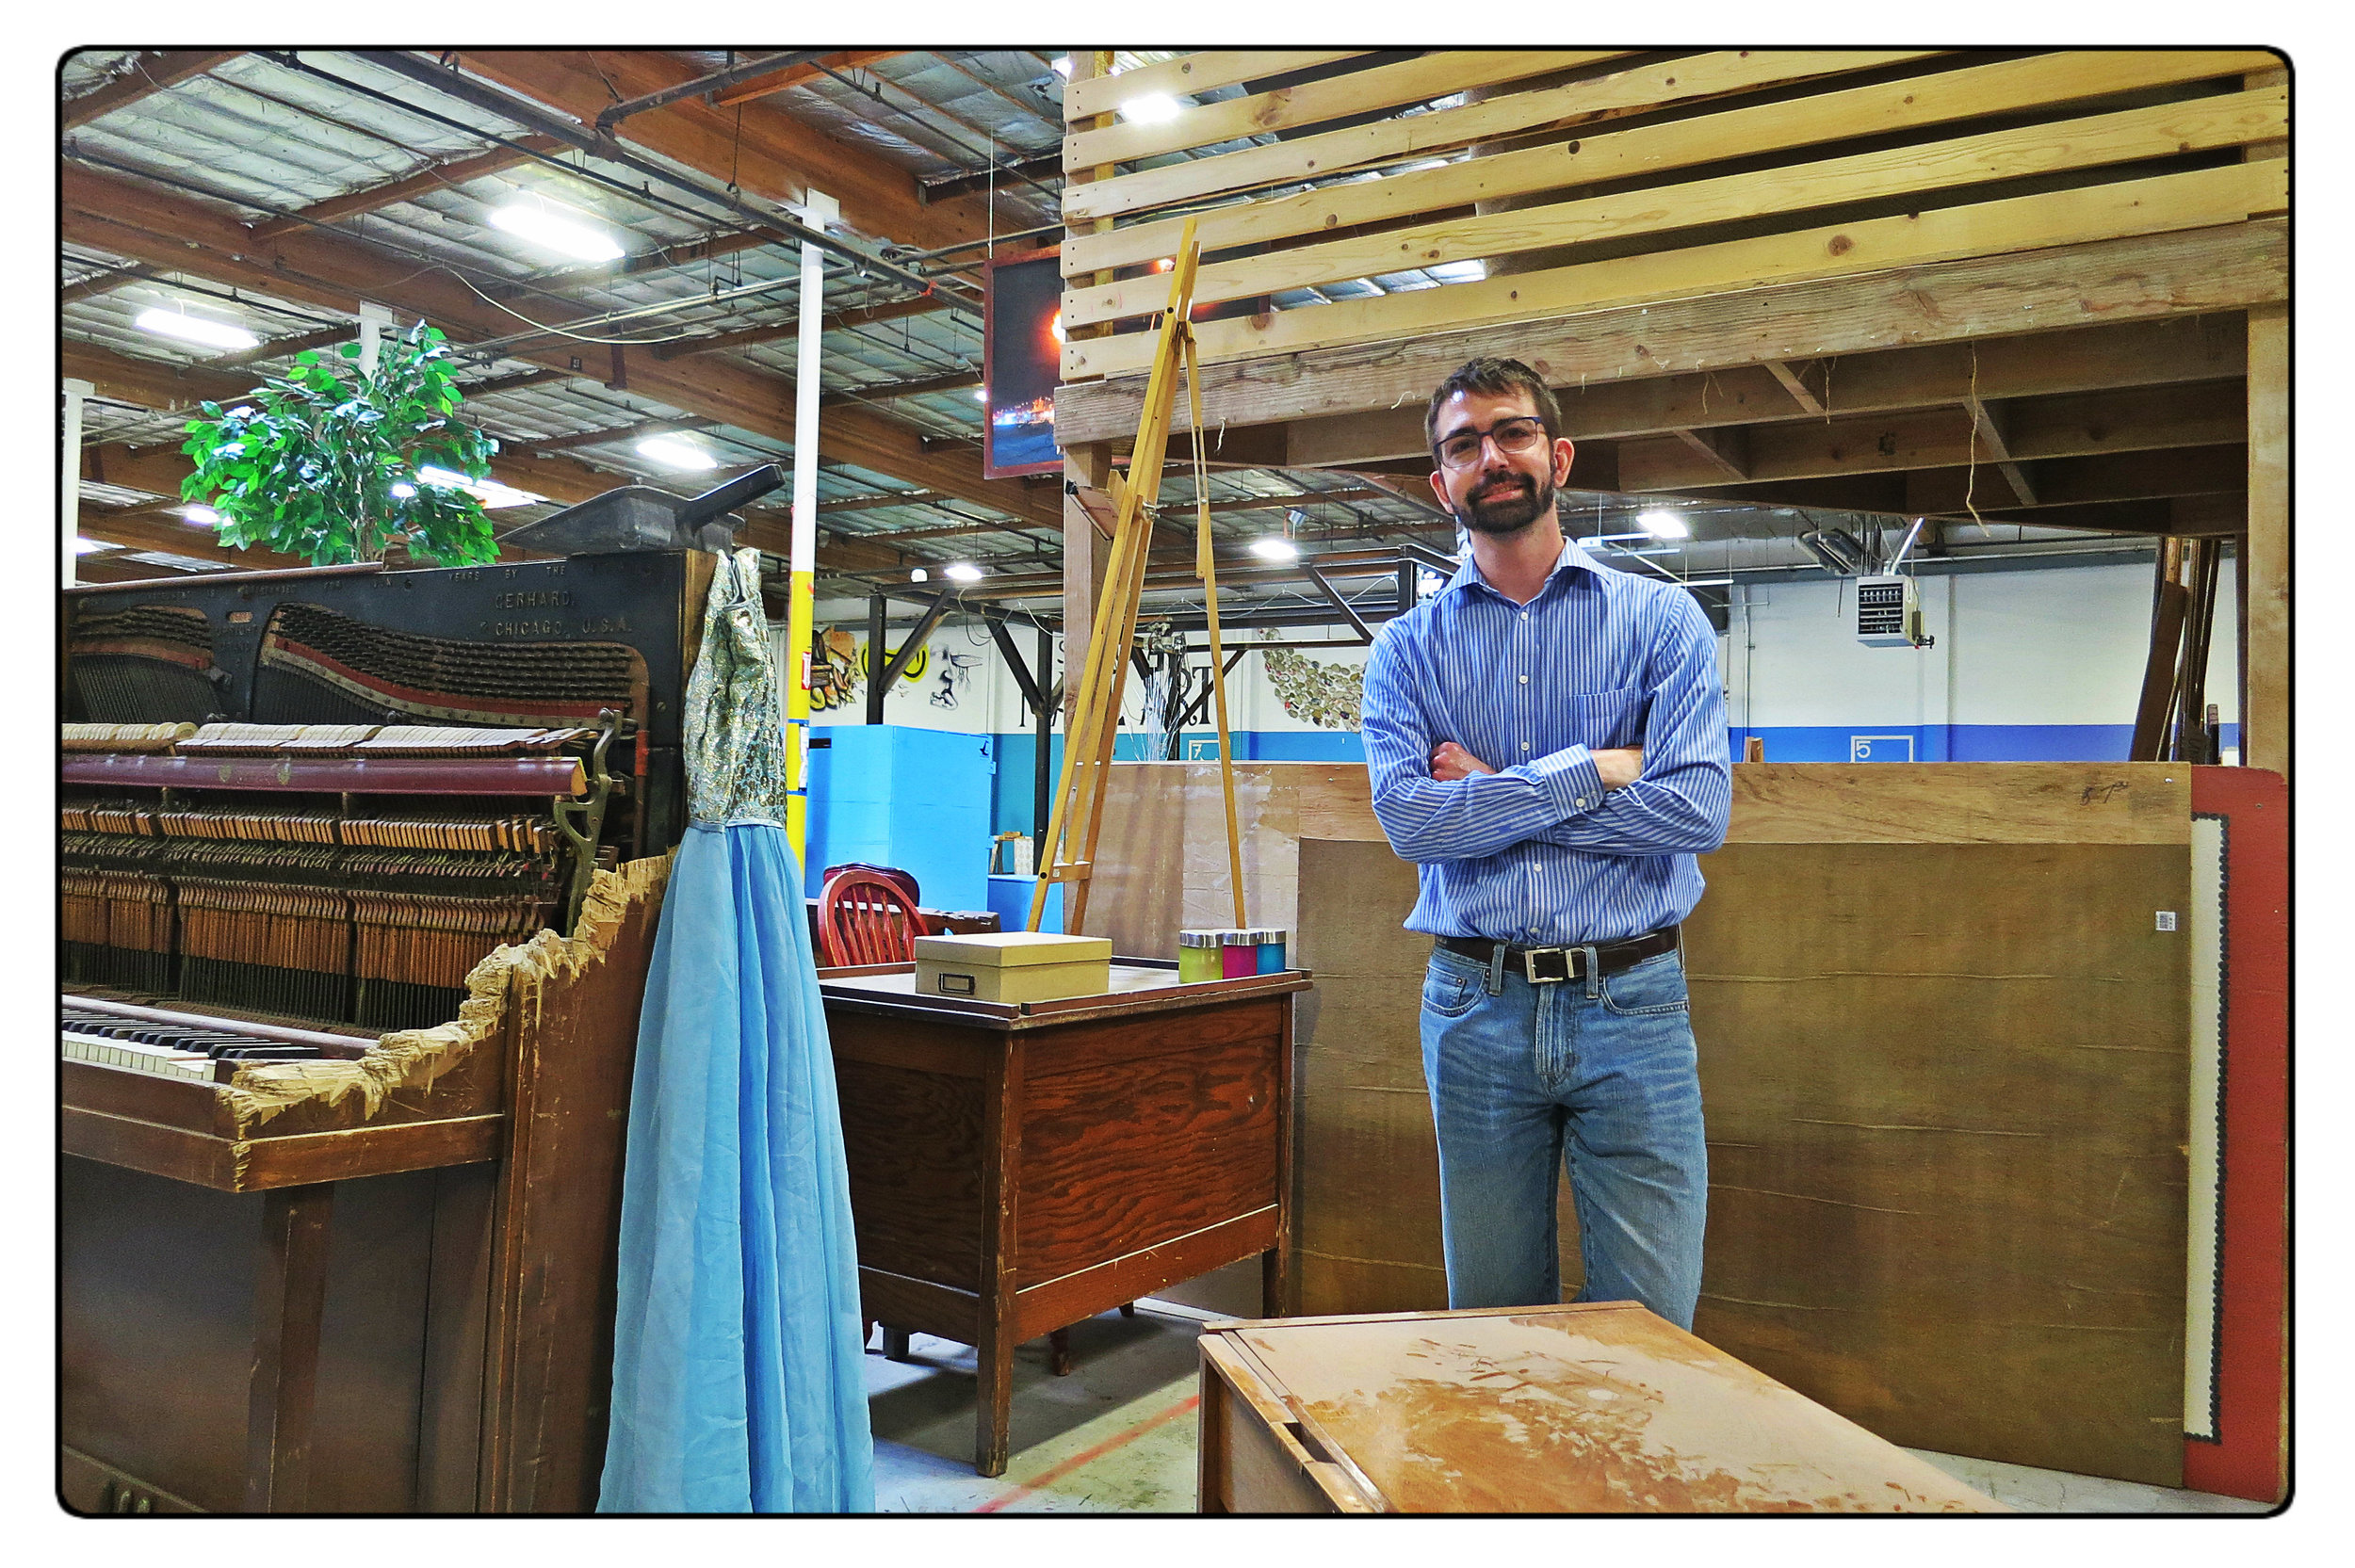 Jay has a six by seven space at the Generator art space in Sparks where he intends to build a neighborhood library.